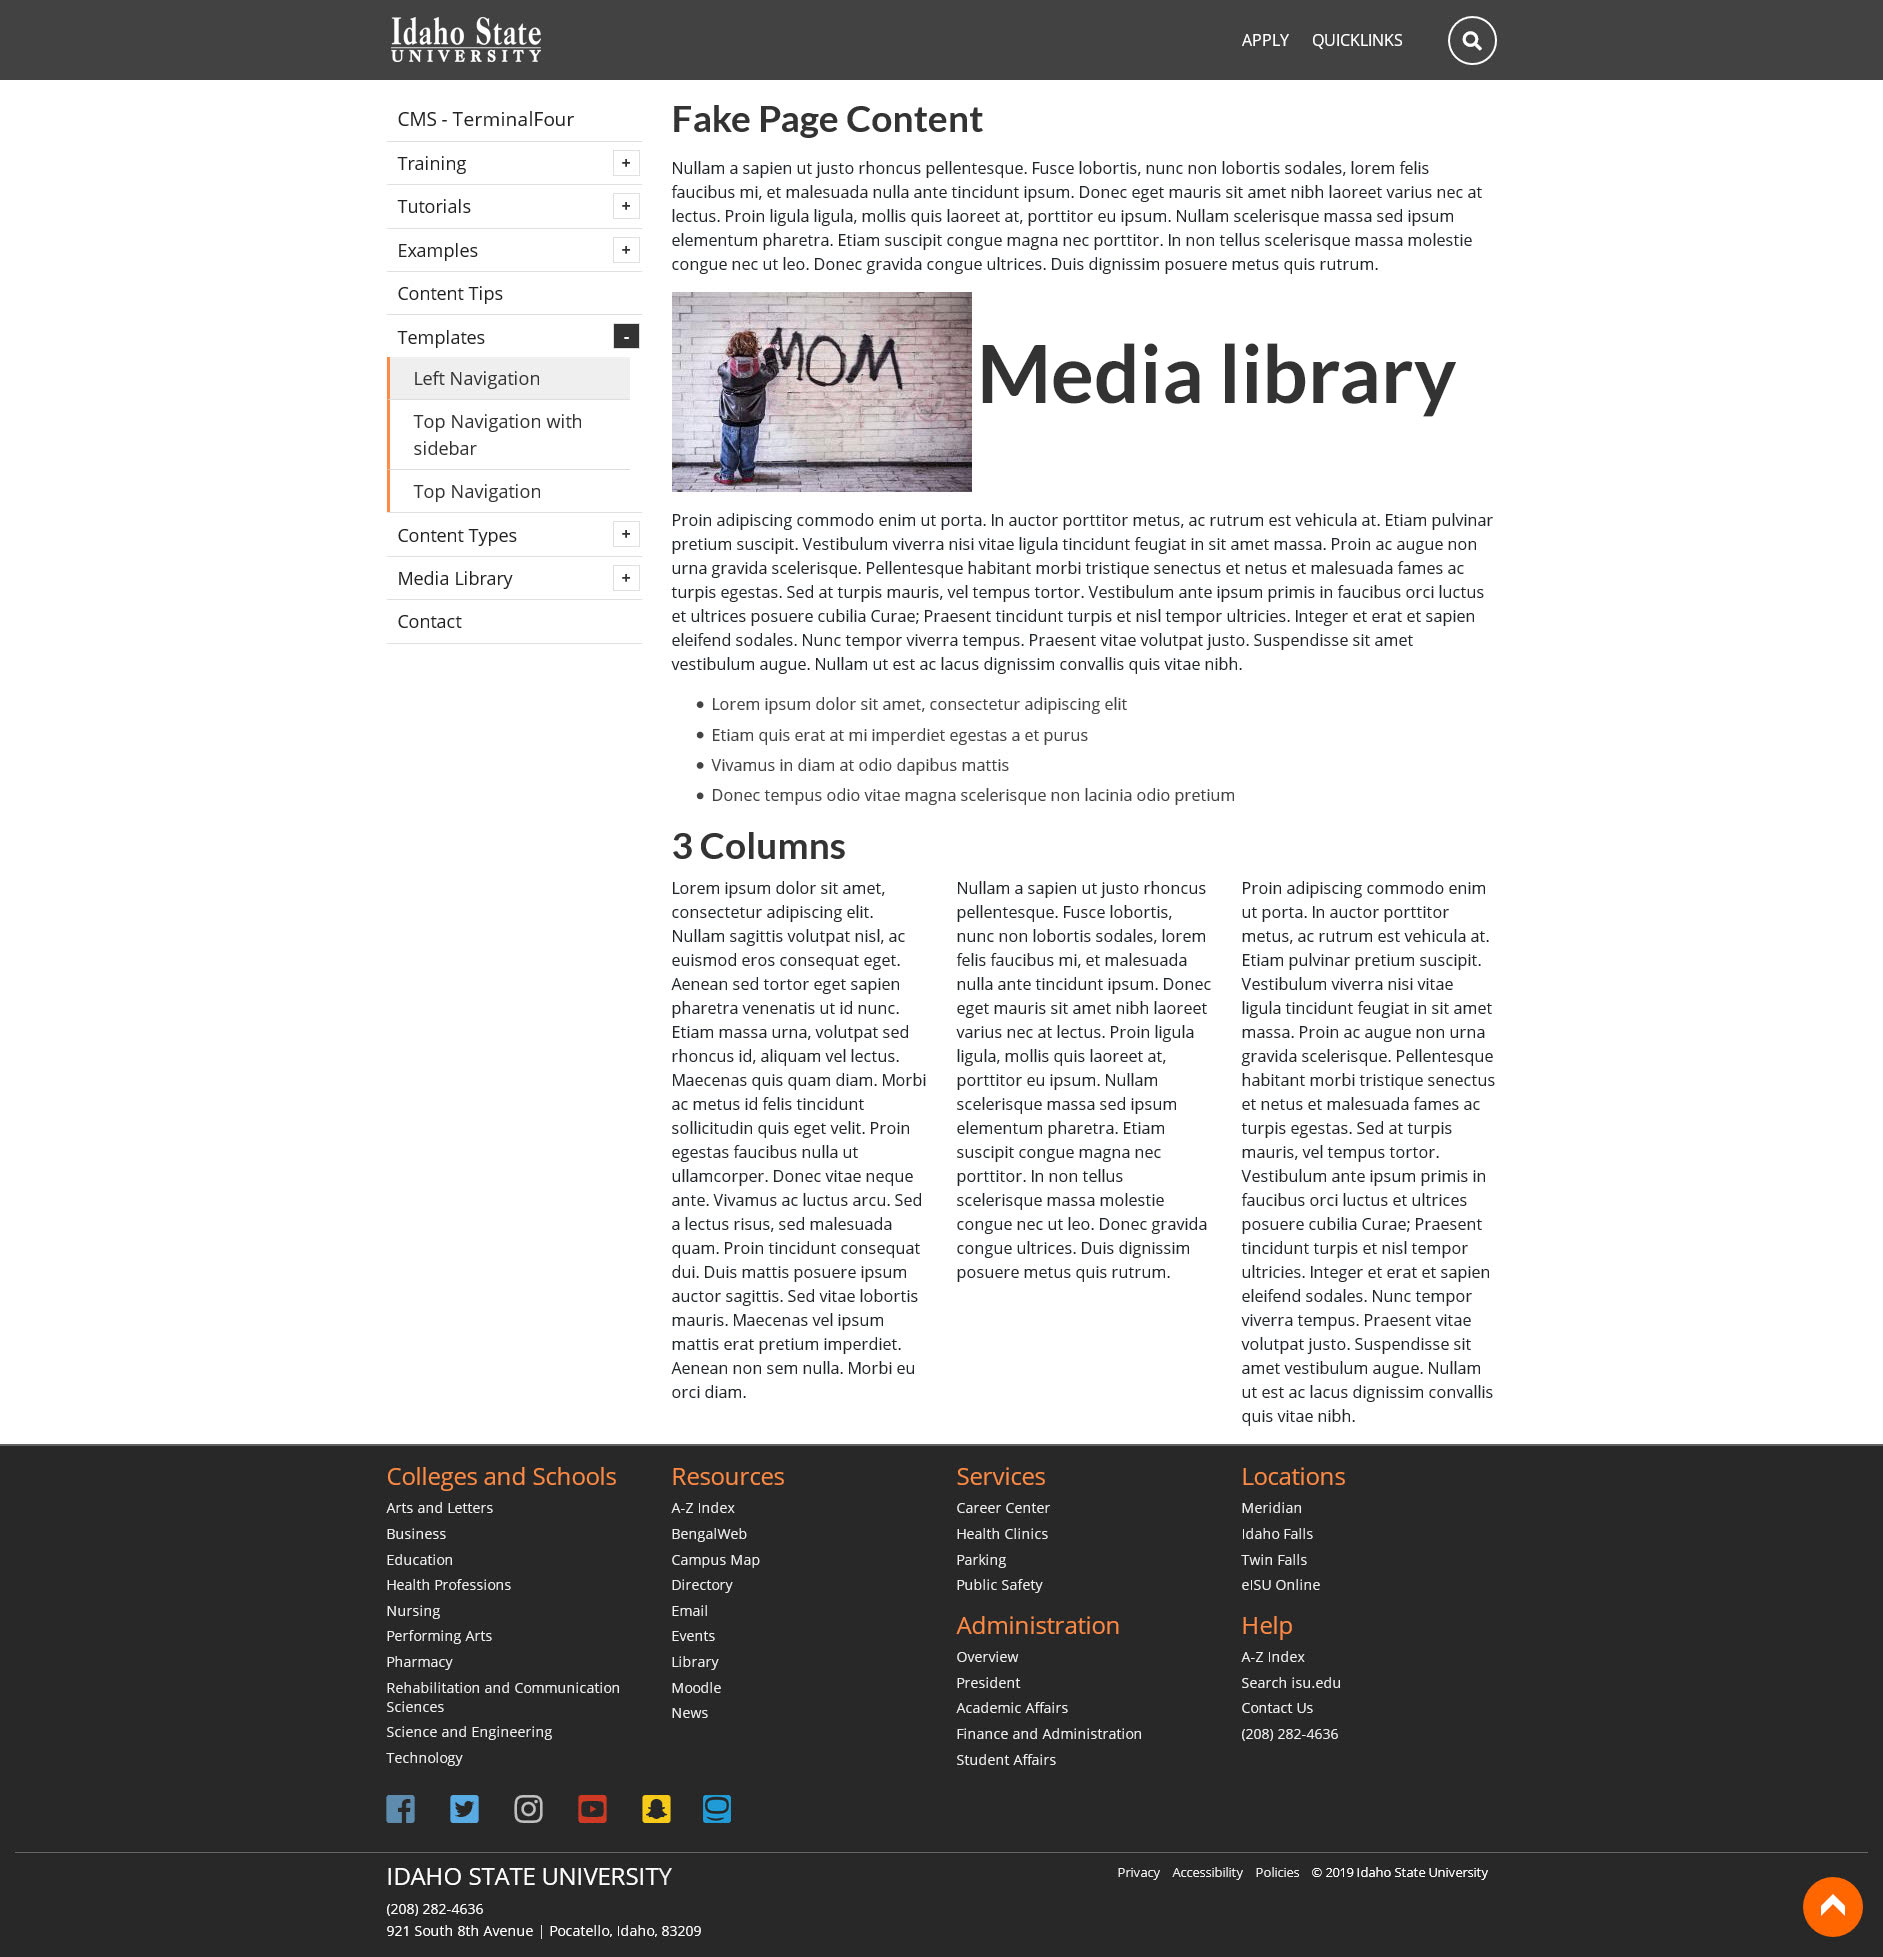 Sample website with media library labeled